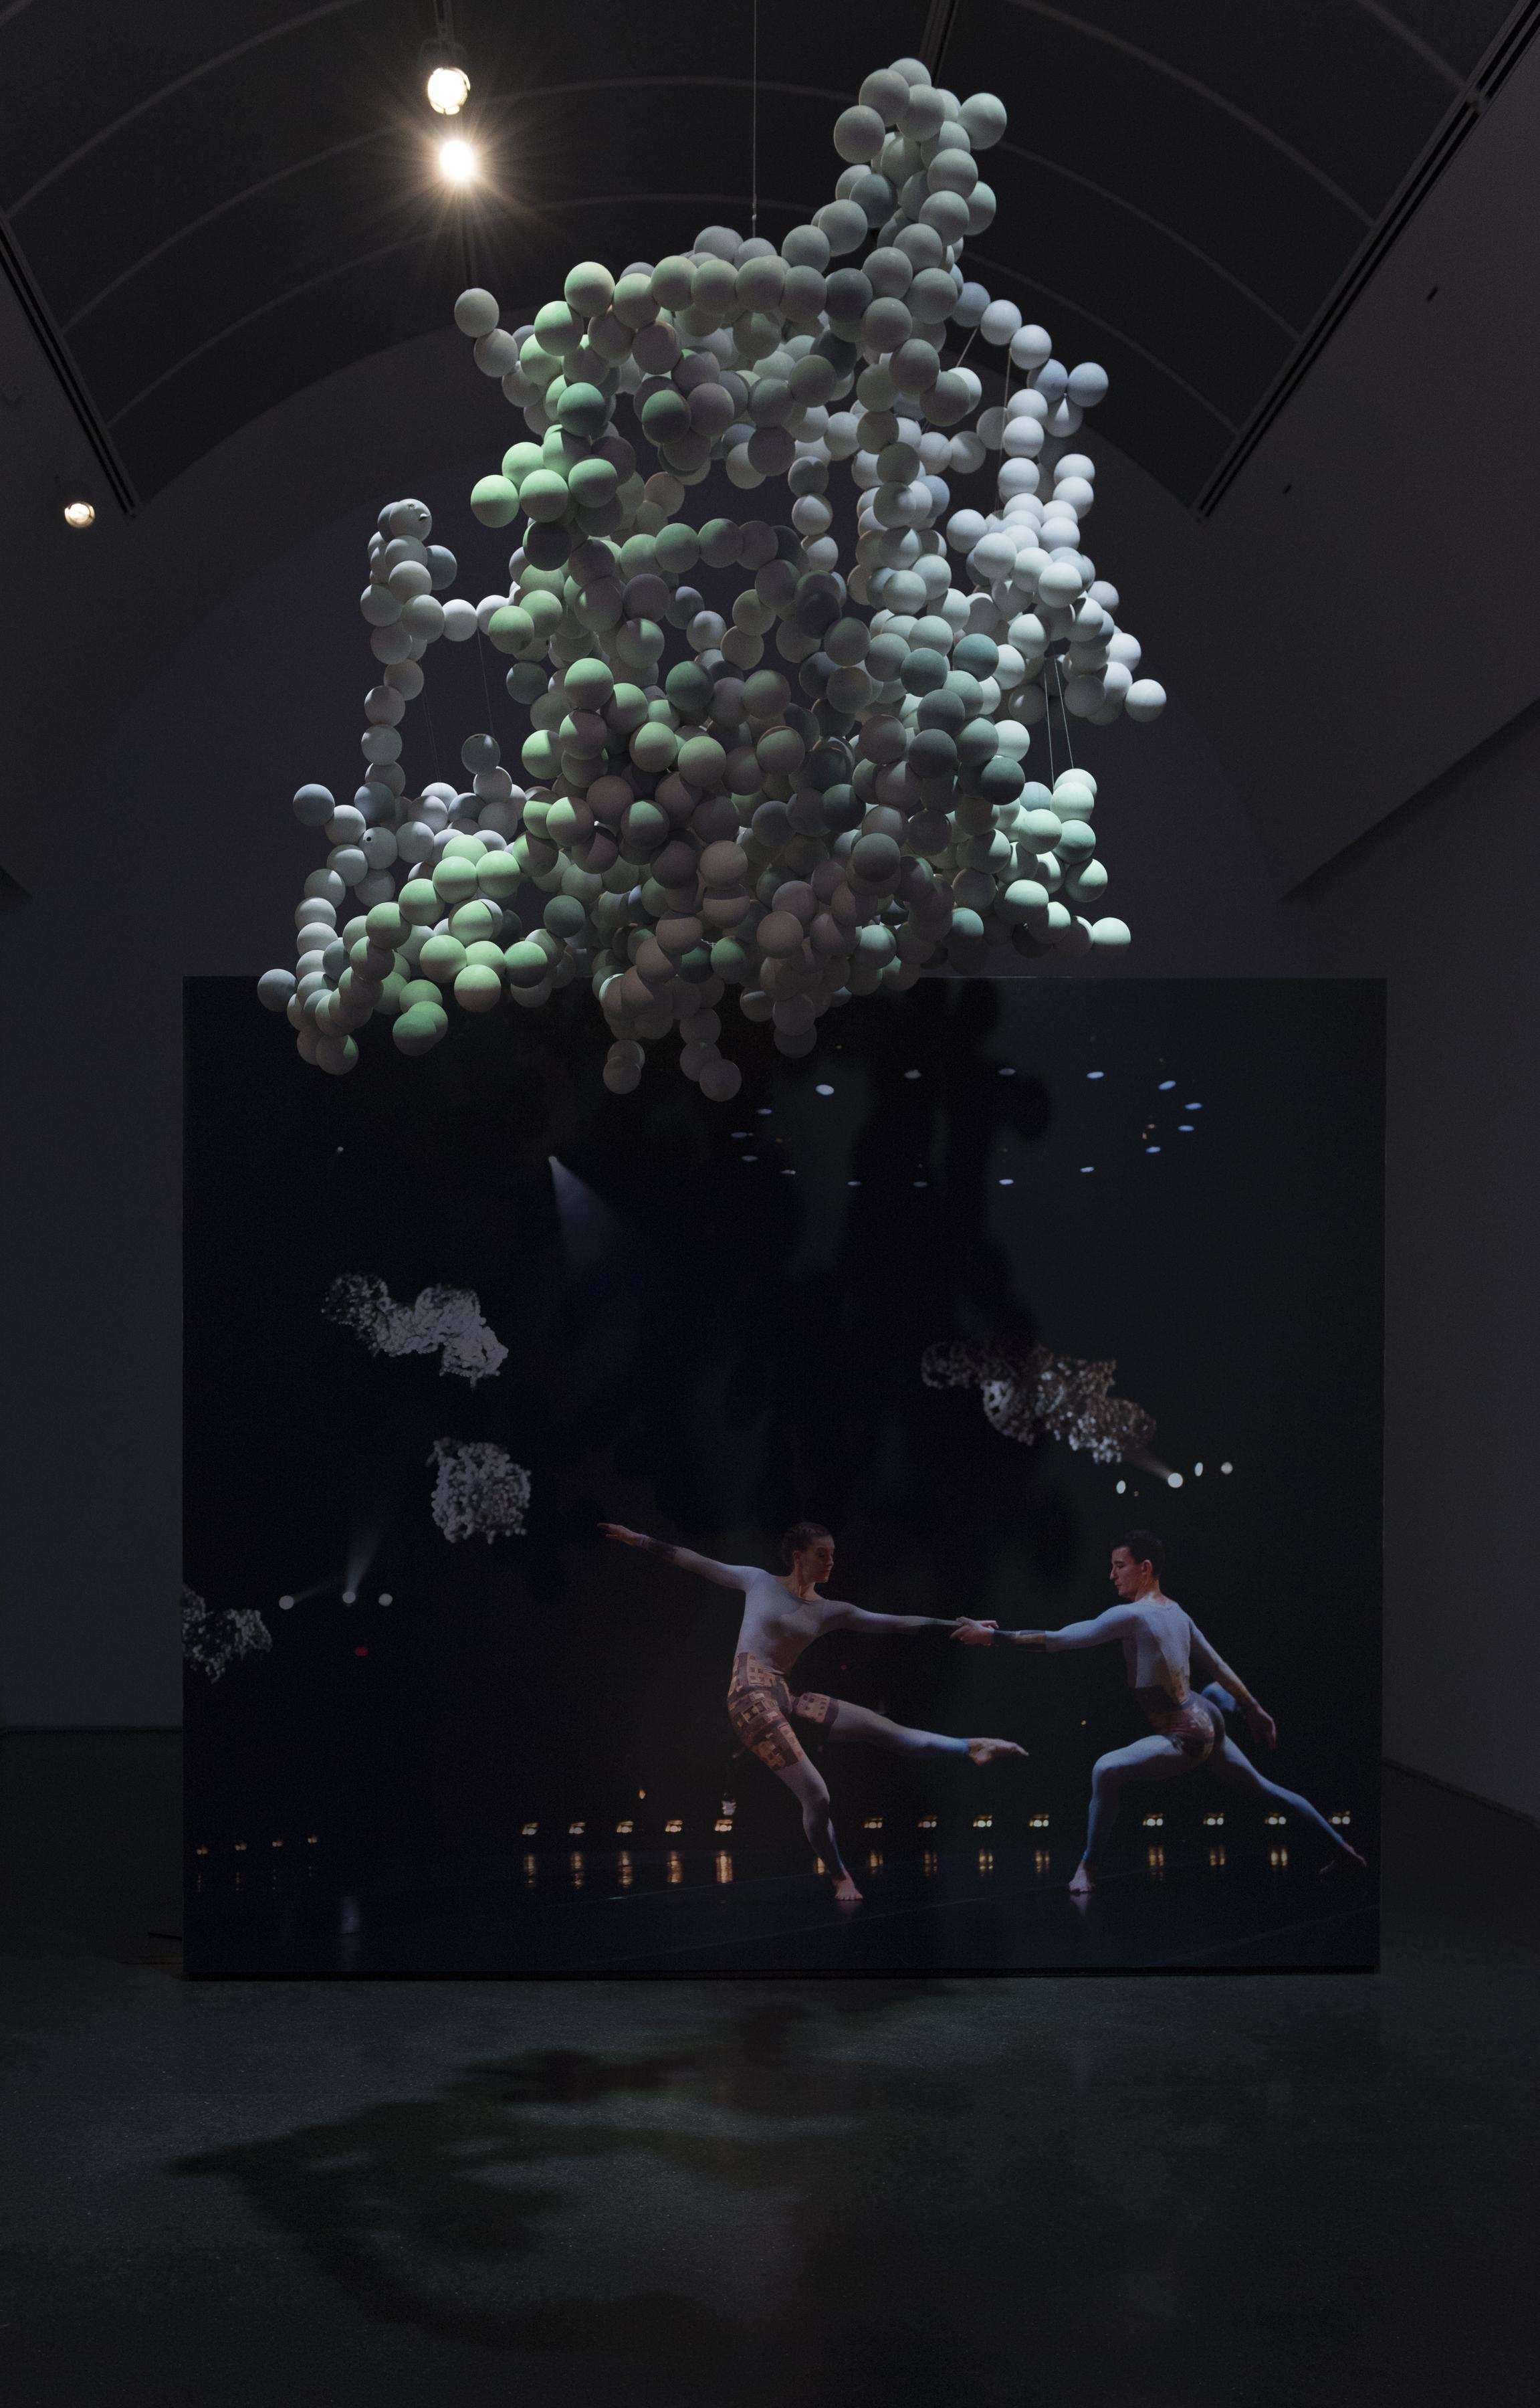 In a dark, dramatically lit space, a large amalgam of white balls hangs from the ceiling while a photo of two female dancers in unitards is visible on the wall.